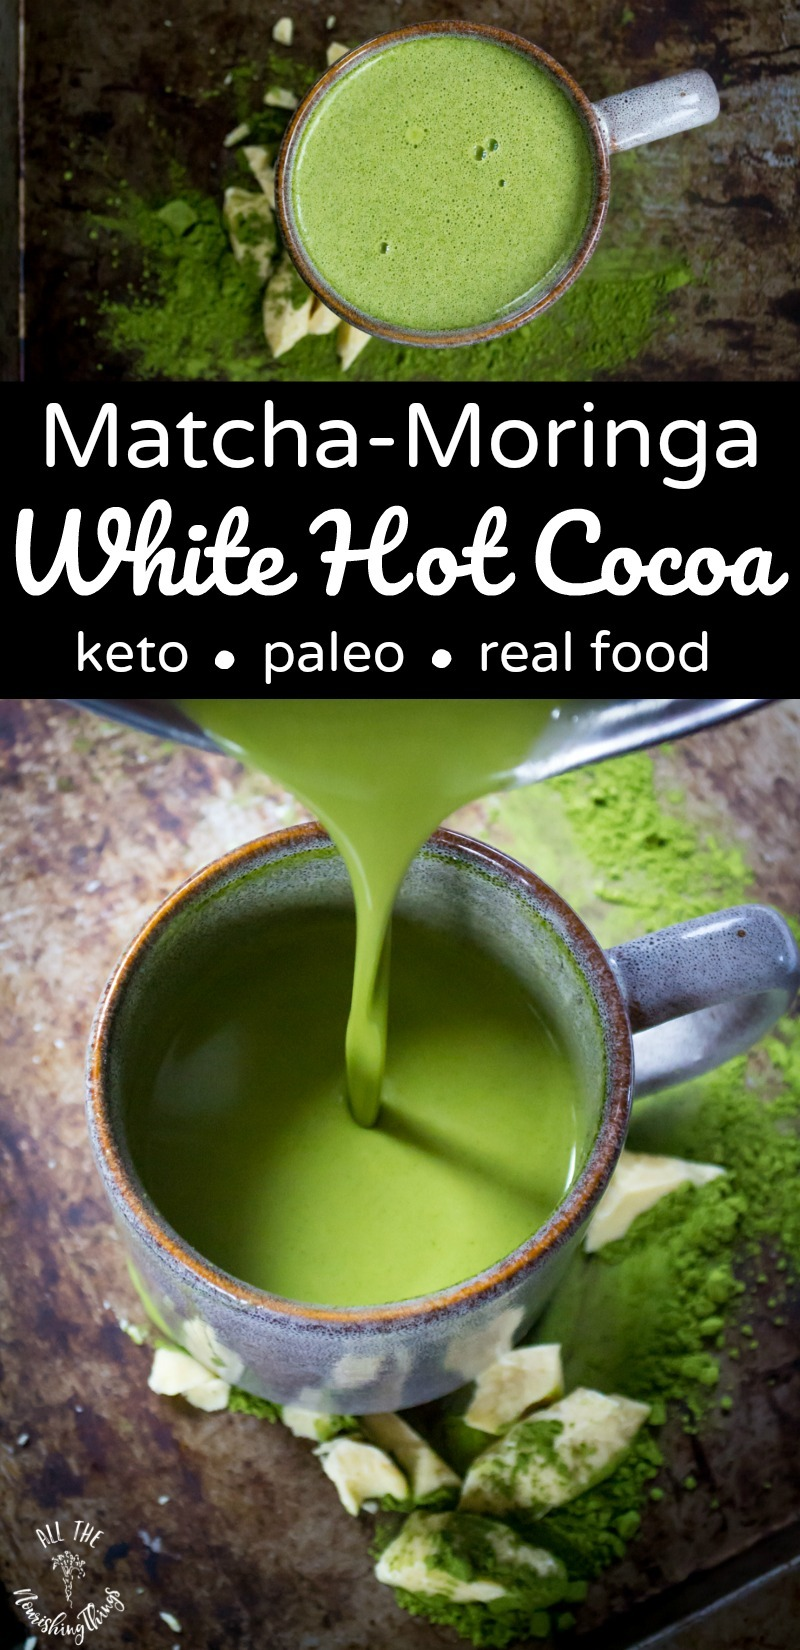 matcha-moringa white hot cocoa collage with text overlay